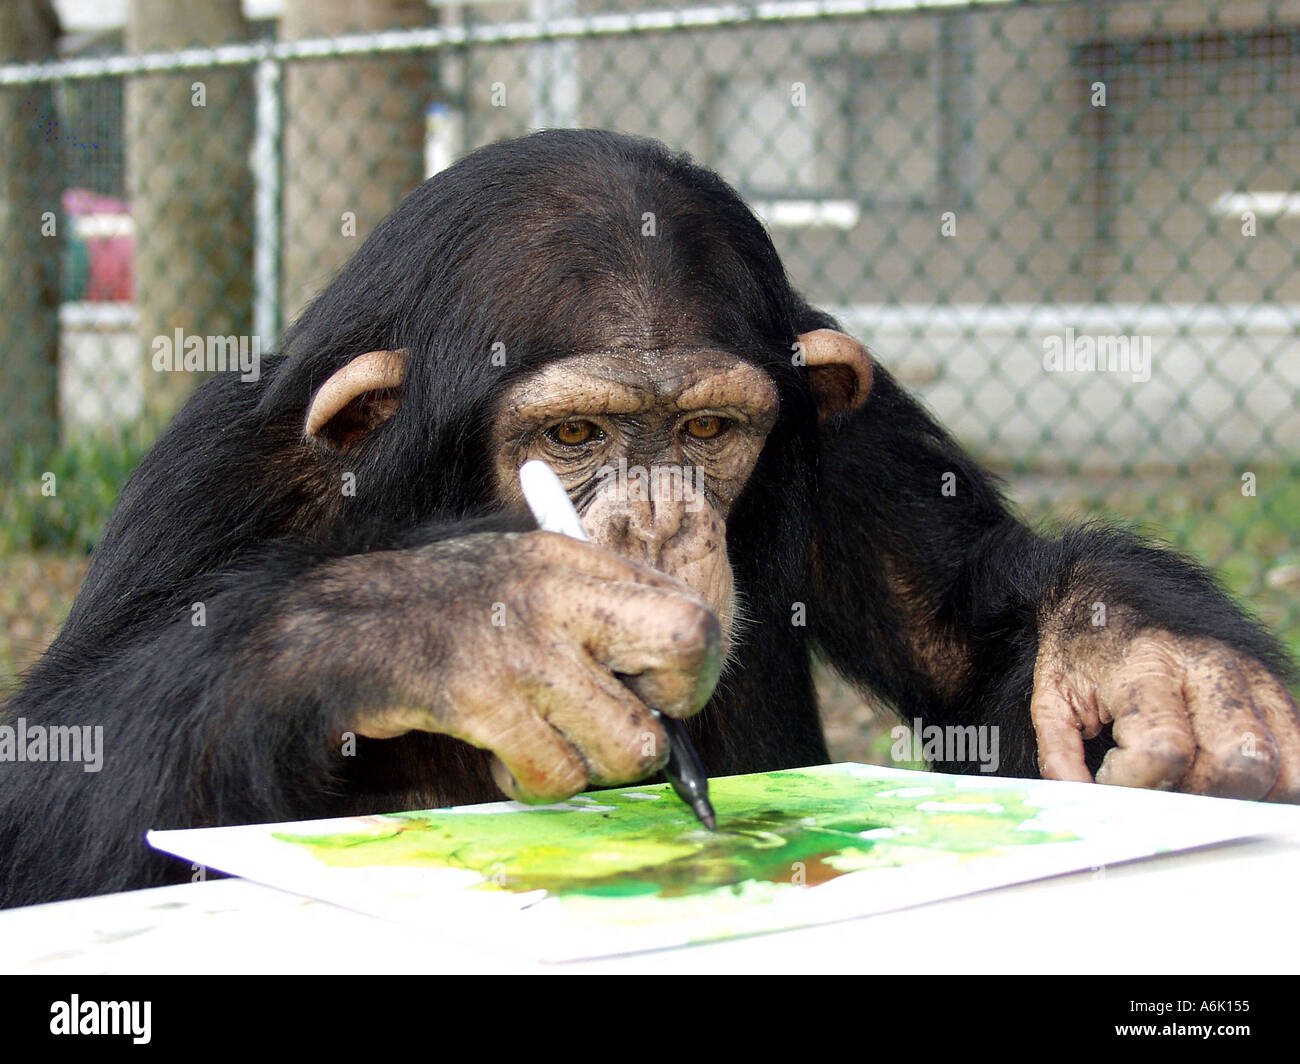 young chimpanzee drawing on a fingerpainting she made with a sharpie